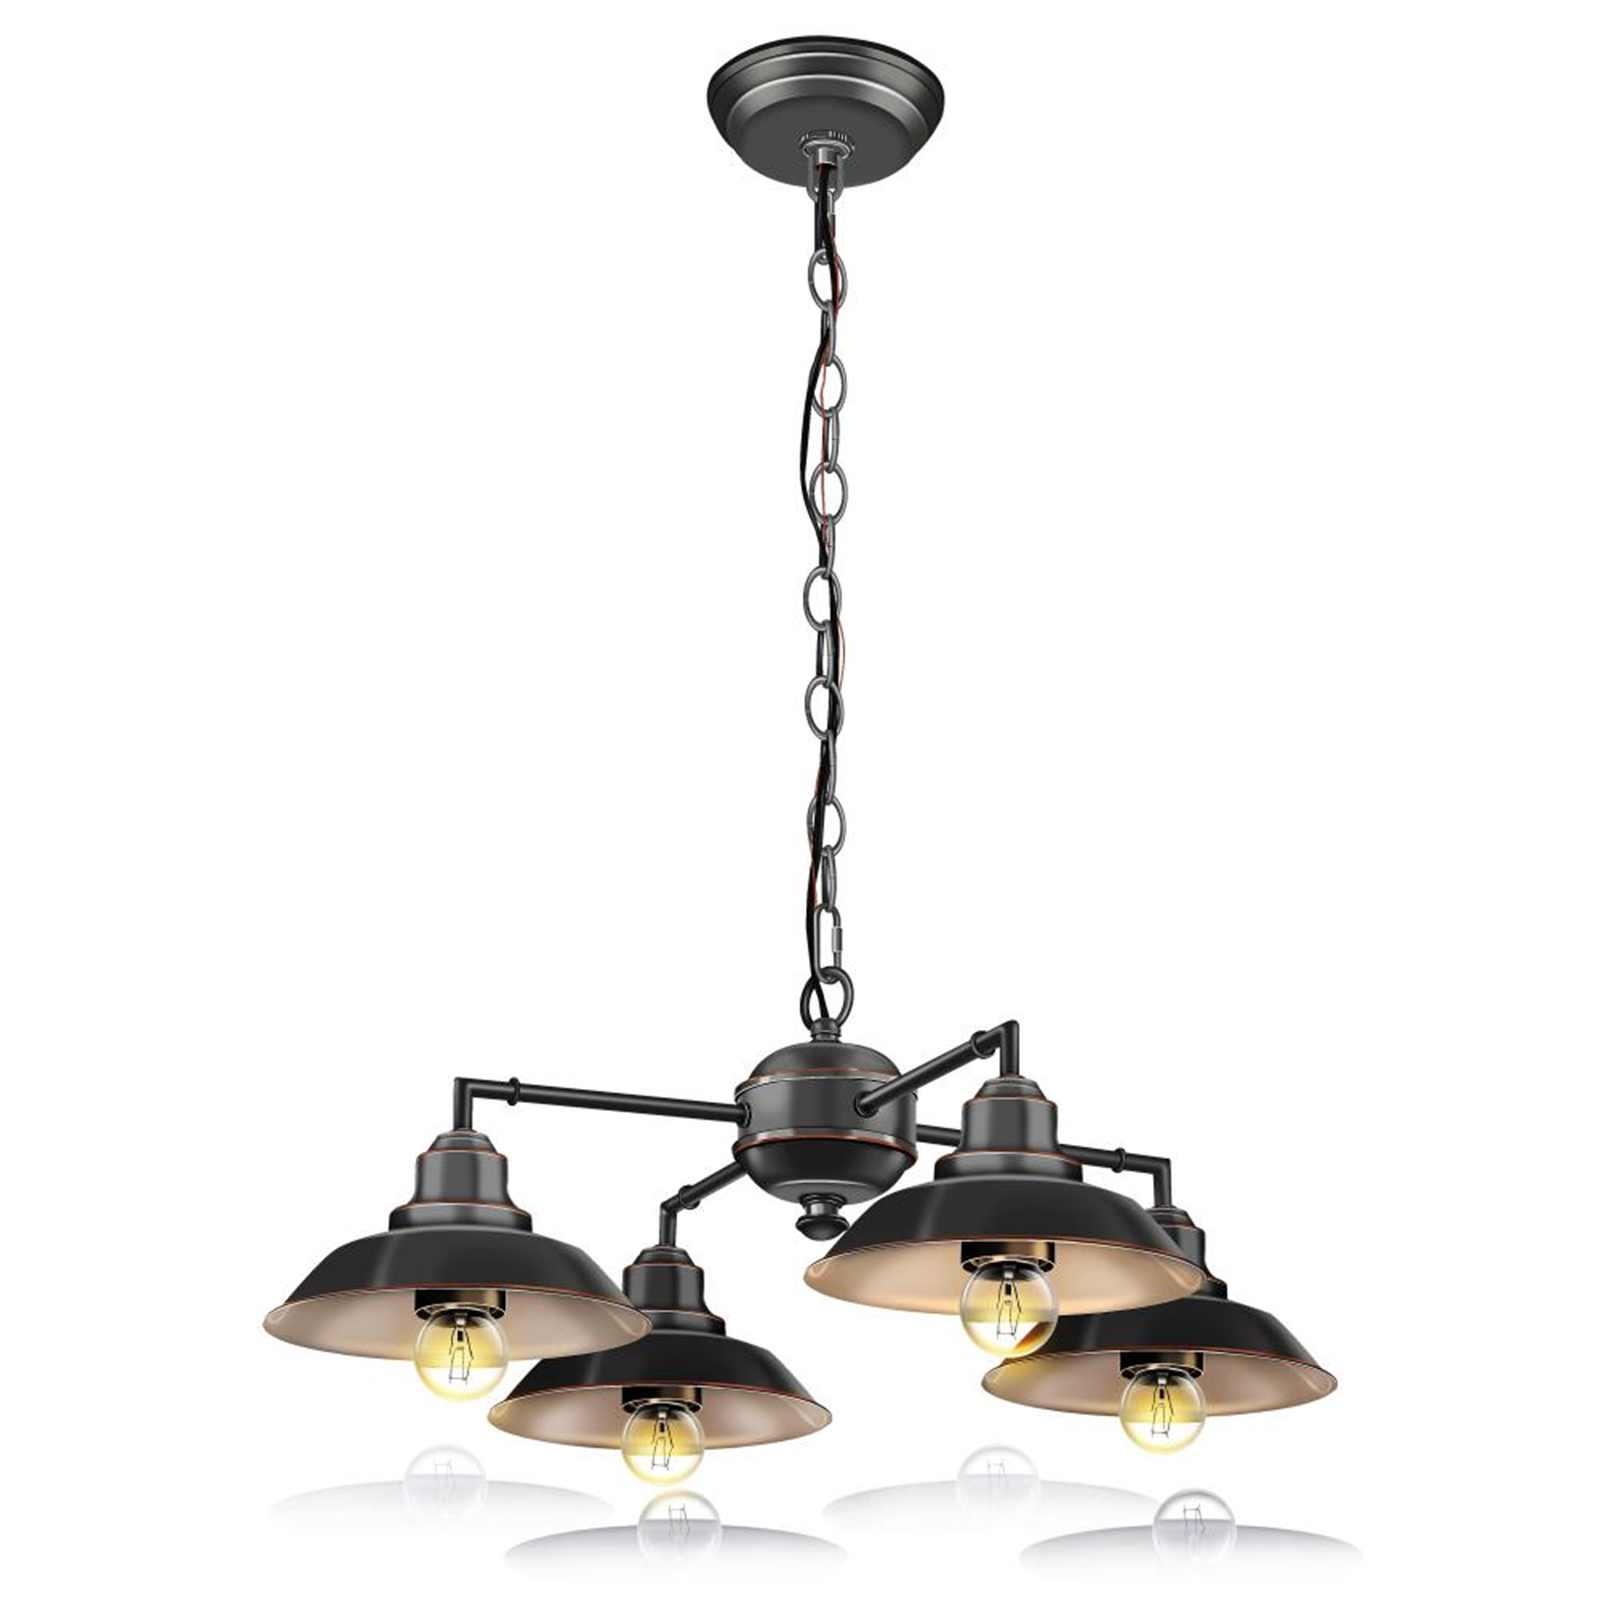 Hanging Lamp Serenelife Vintage Style Chandelier Pendant Hanging Lamp Light Fixture With Metal Lighting Accent